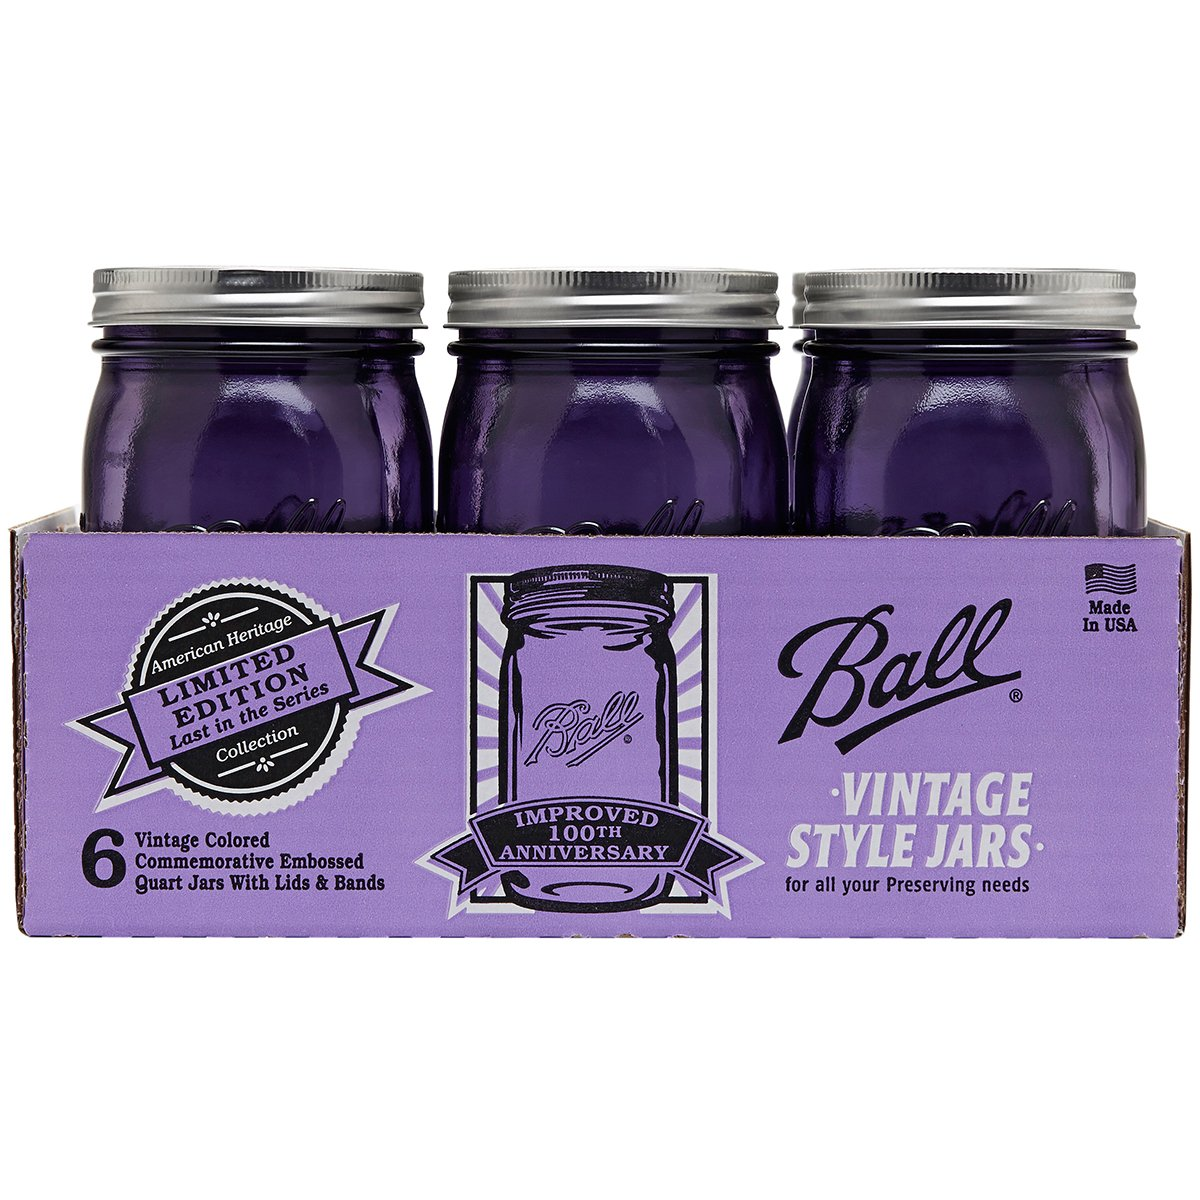 Ball Jar Ball Heritage Collection Quart Jars with Lids and Bands, Purple, Set of 6 by Ball Jar (Image #1)